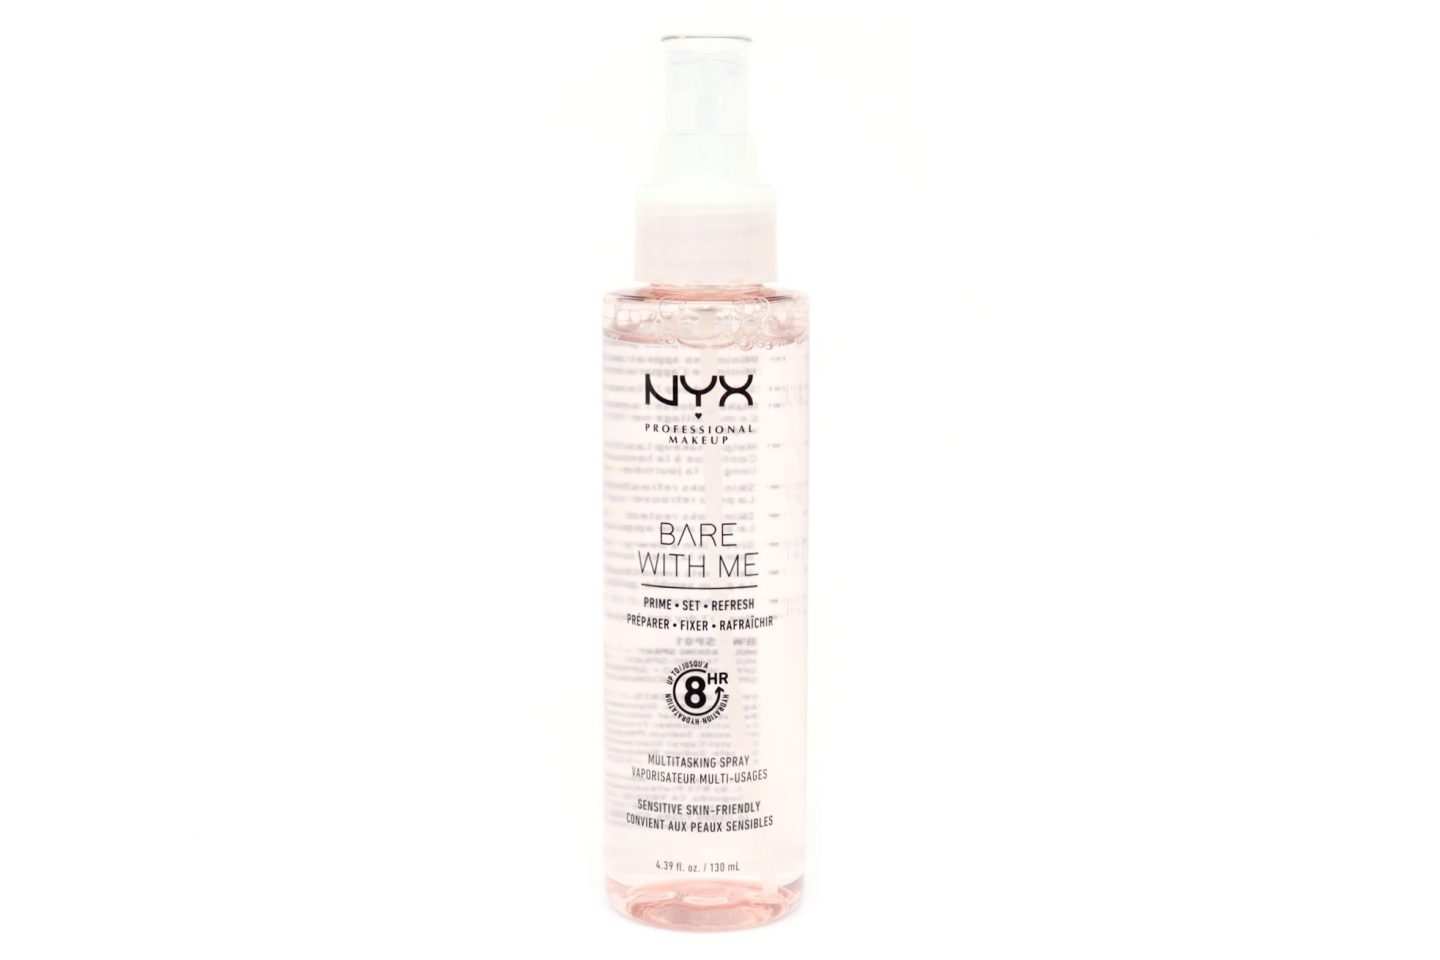 NYX Professional Makeup Bare With Me Prime. Set. Refresh Spray